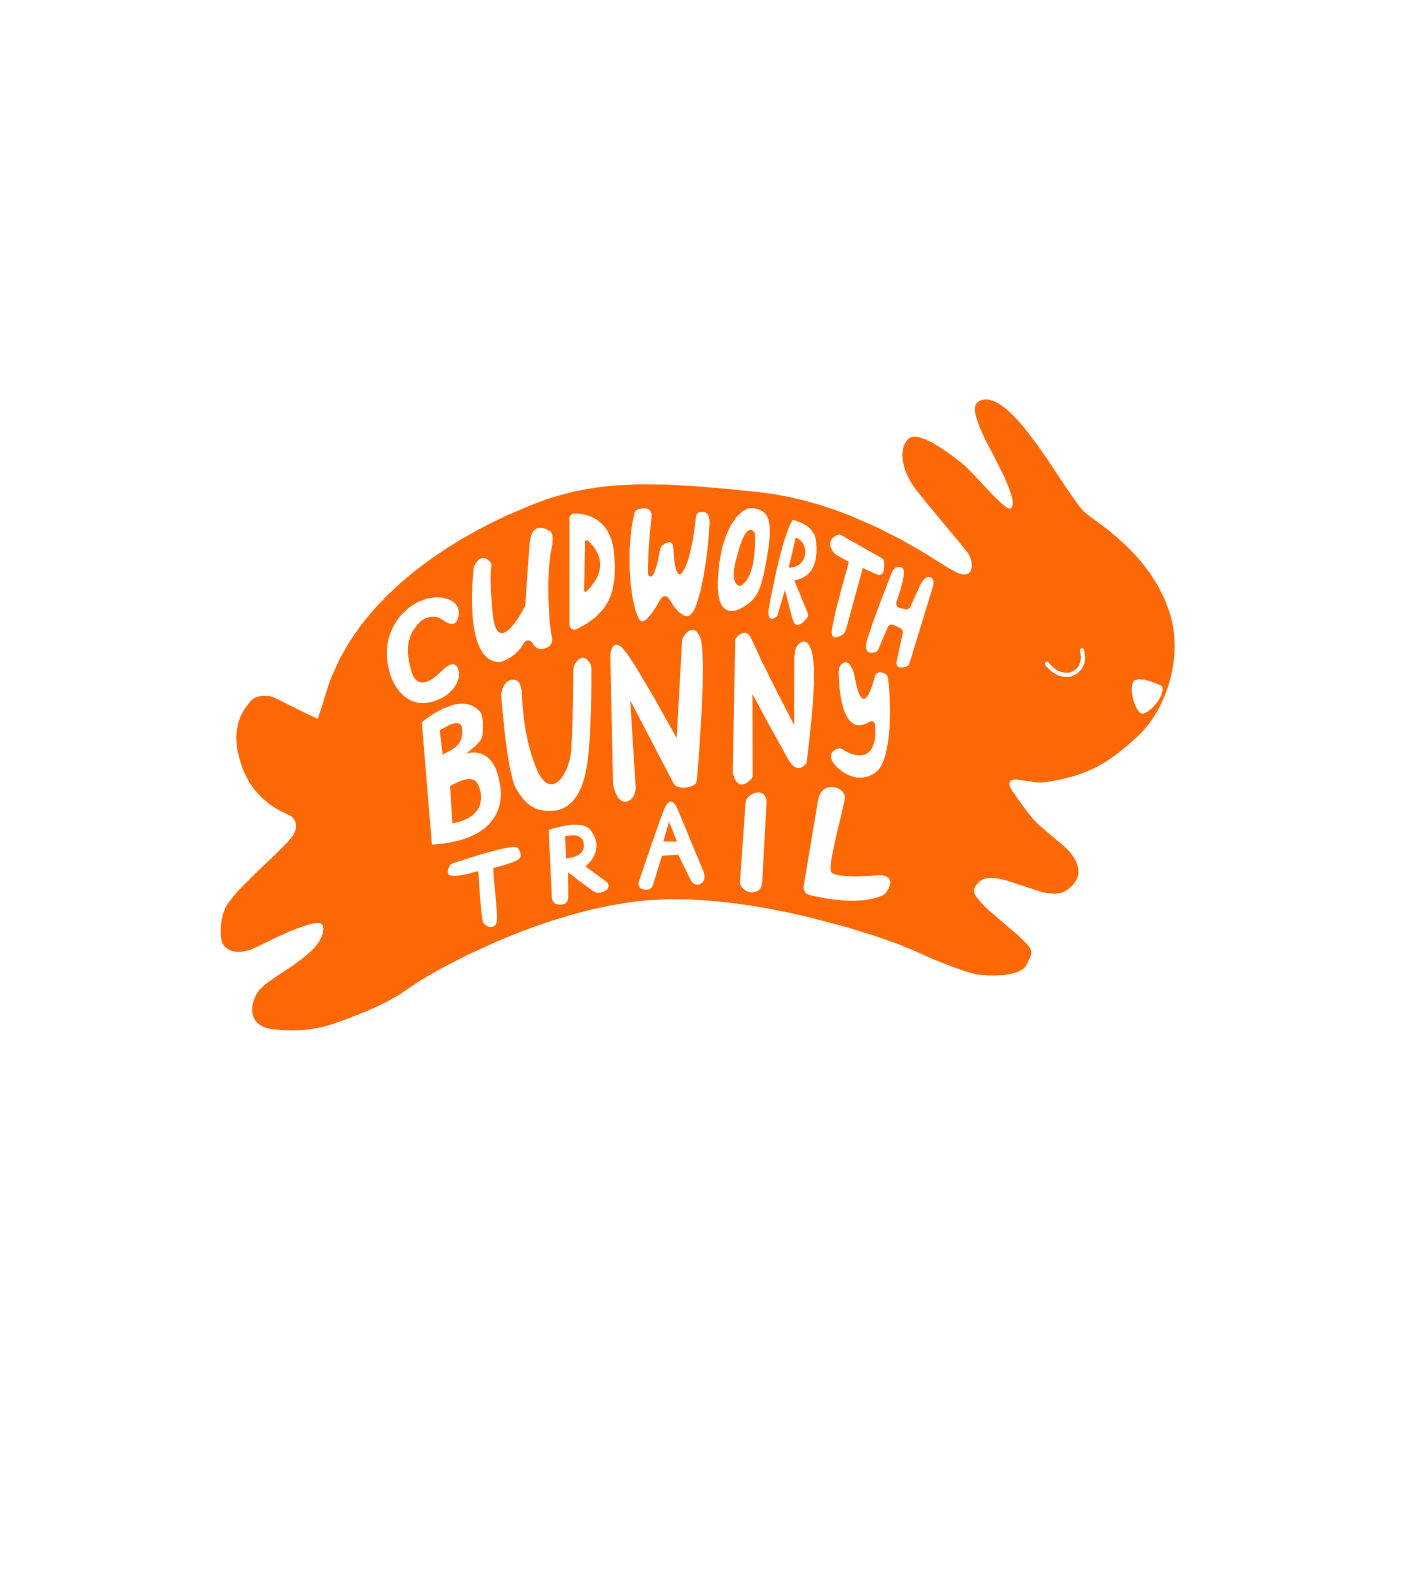 Cudworth Bunny Trail Logo